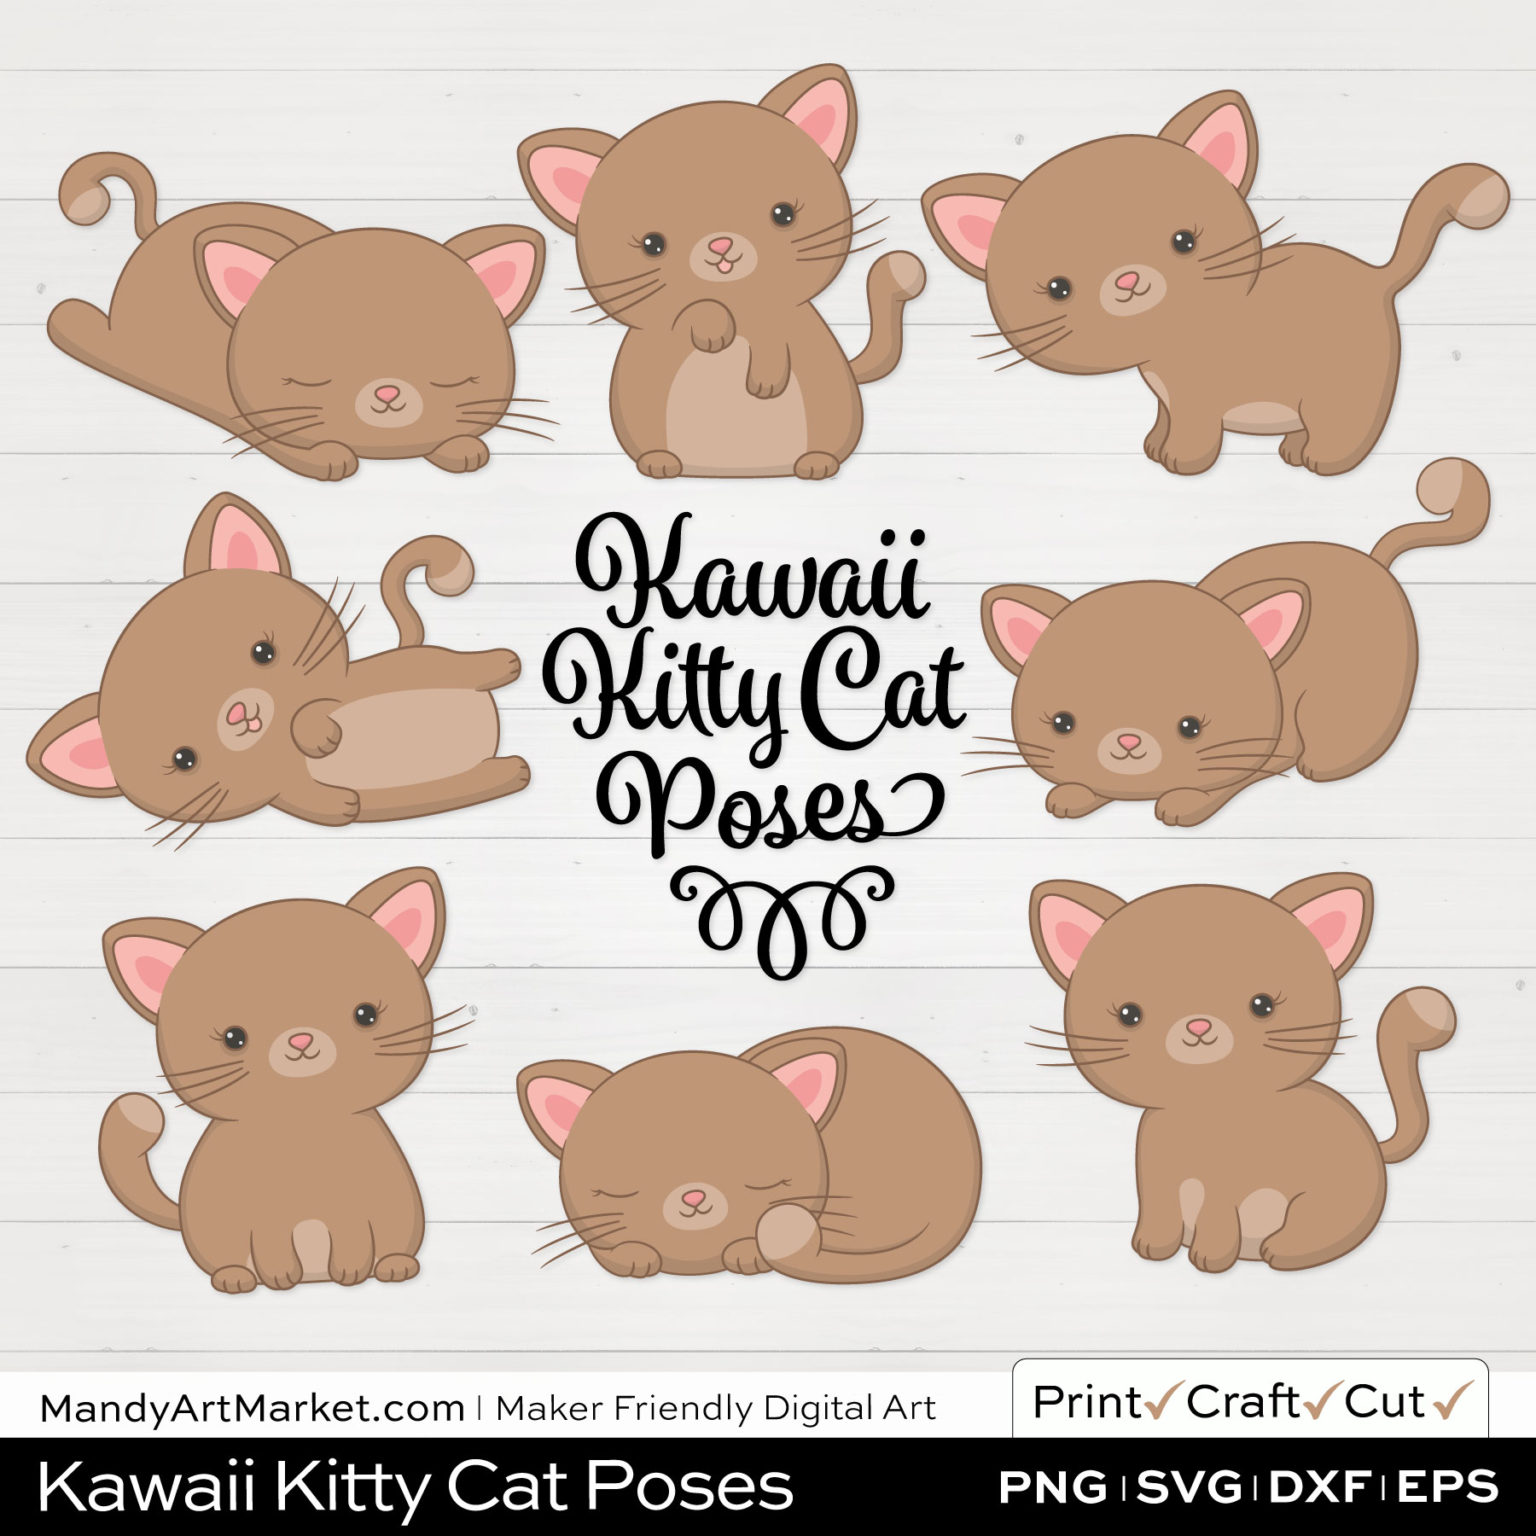 Sand Brown Kawaii Kitty Cat Poses Clipart on White Background